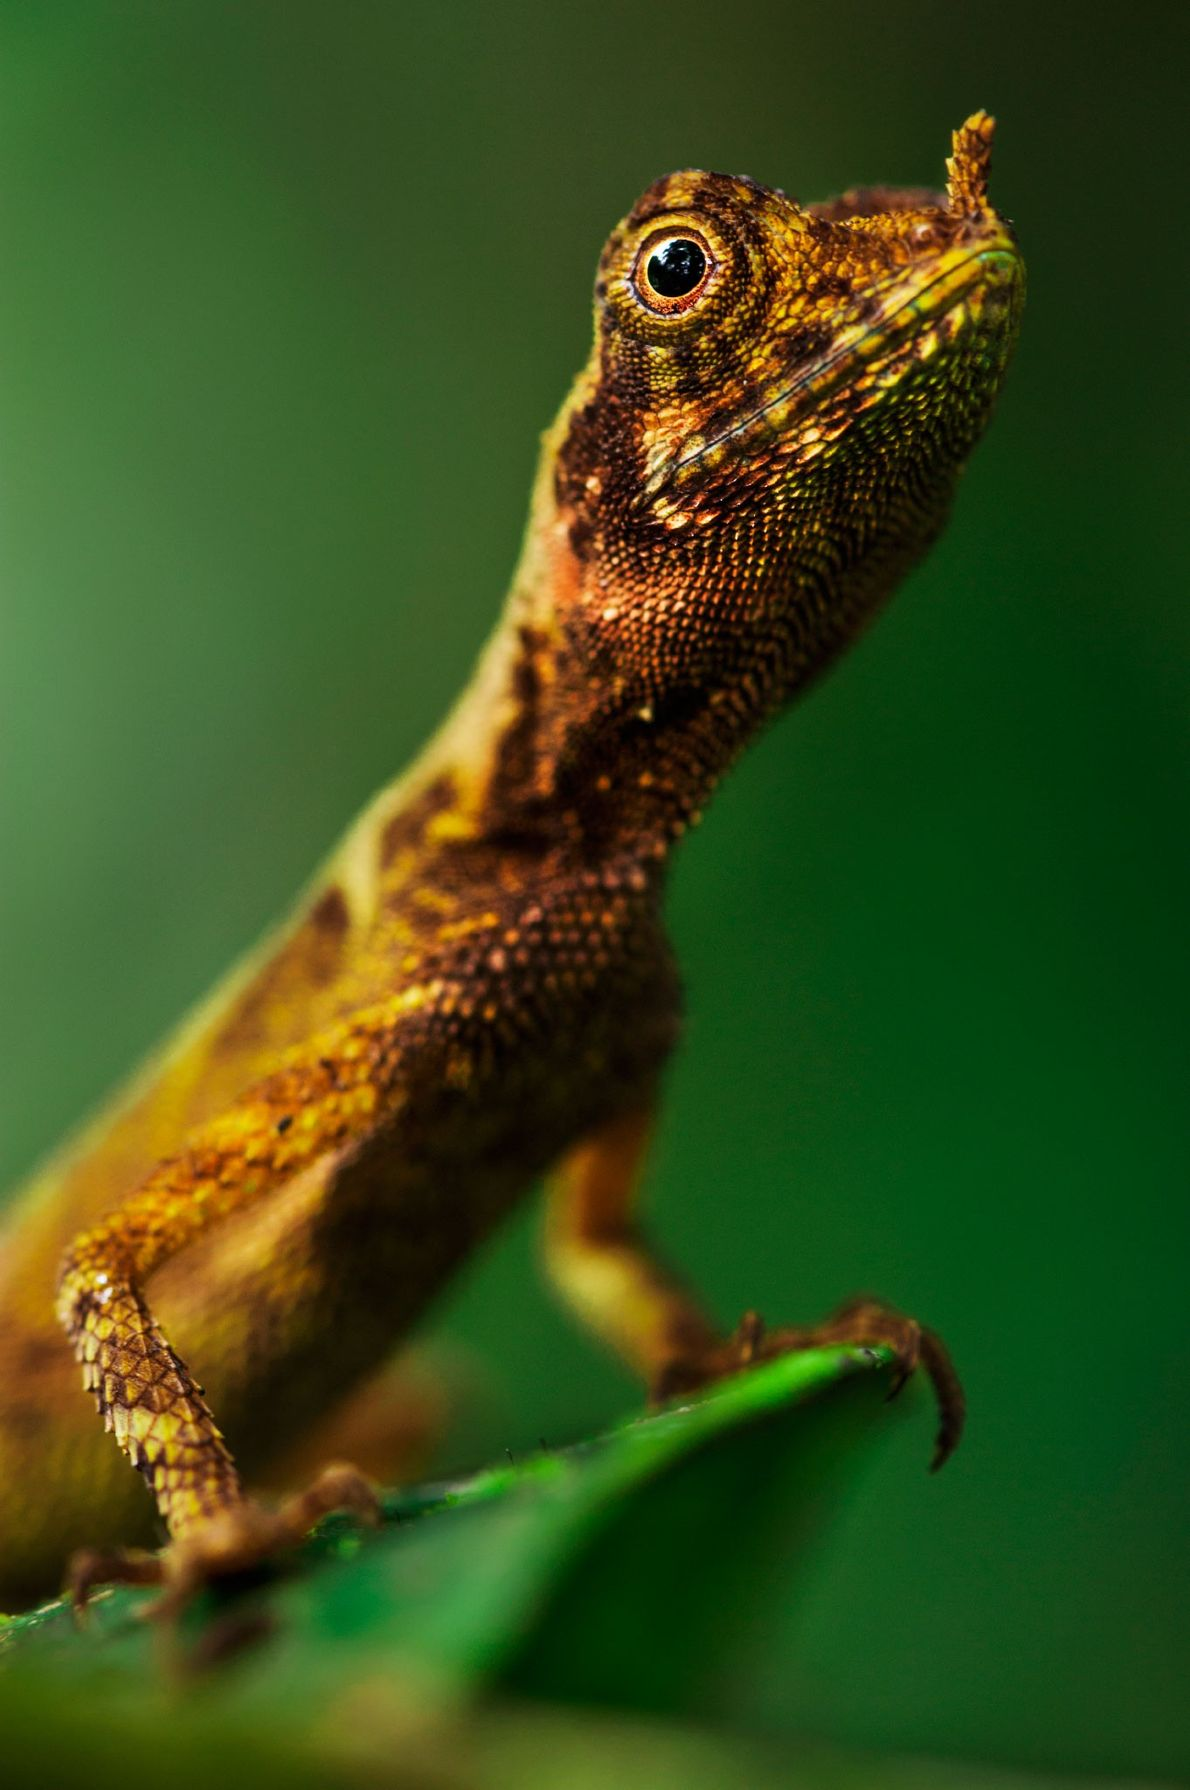 A leaf-nosed crested lizard keeps its head up in the Danum Valley of Borneo Island, Malaysia.